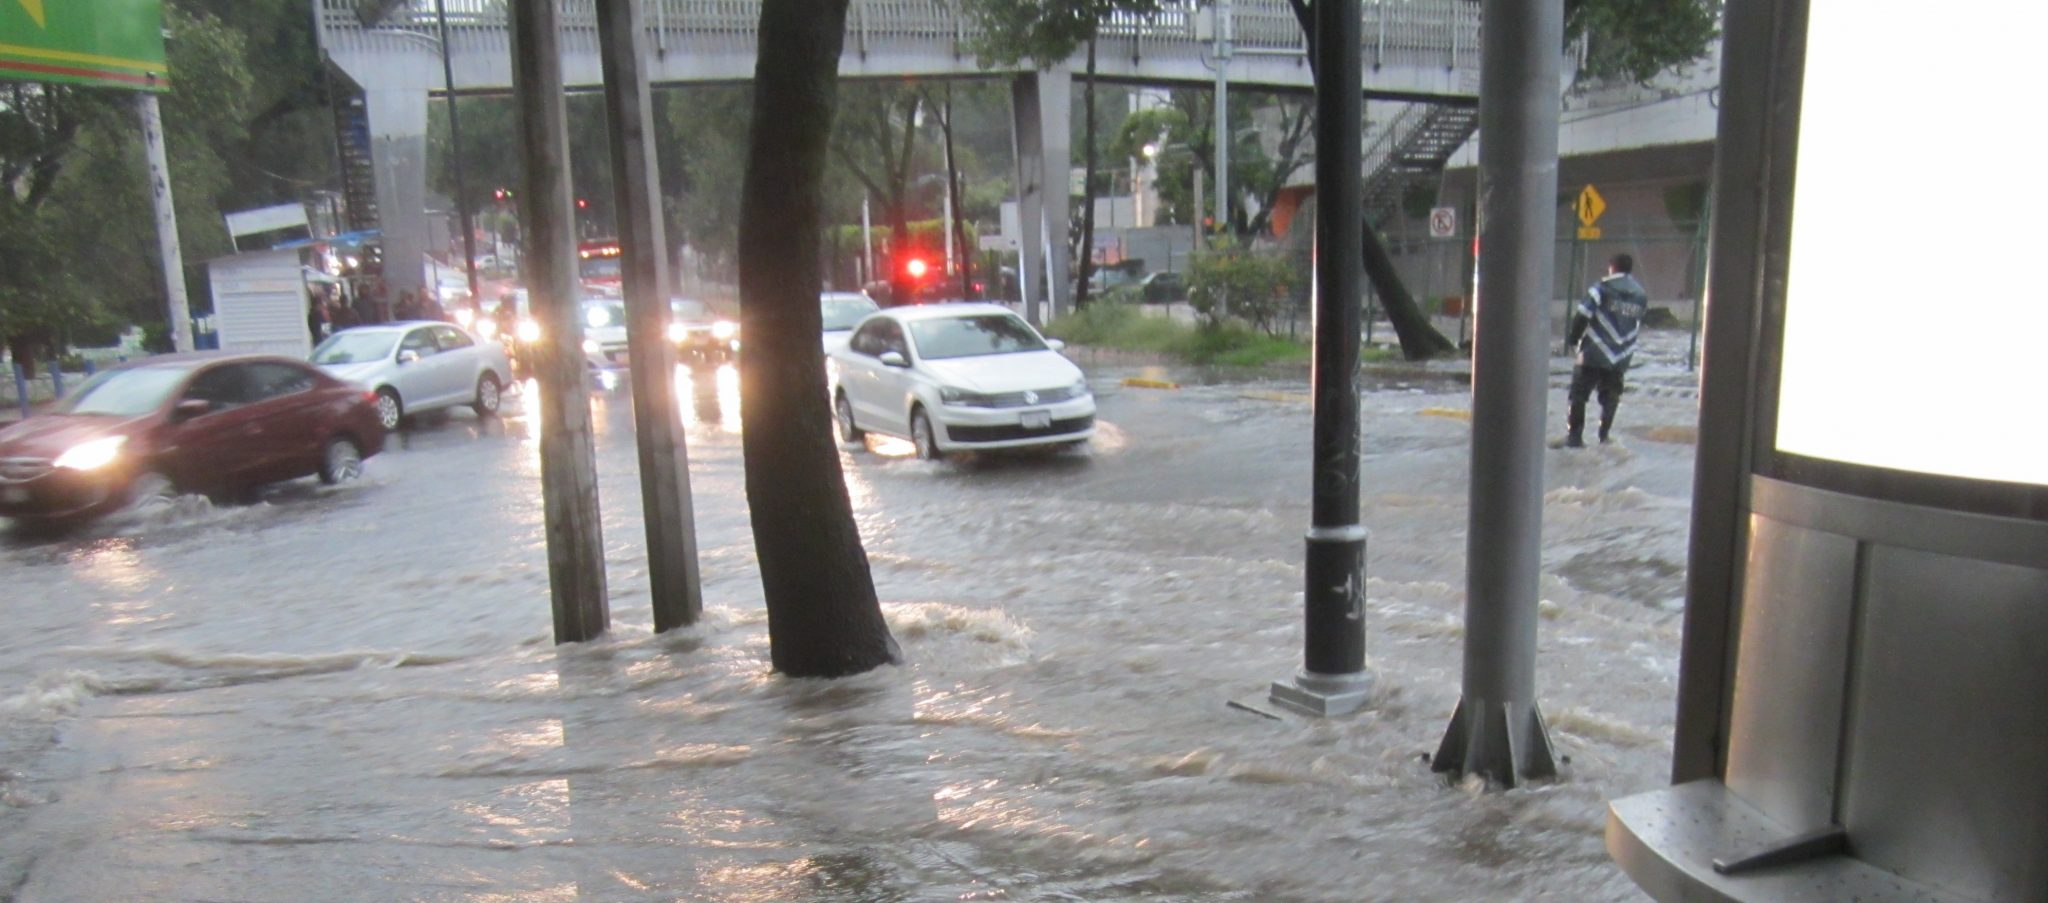 ecological issues in mexico city essay Critical issues in transportation 3 t he united states depends on transpor-tation to compete globally and to help revive a sluggish domestic economy.